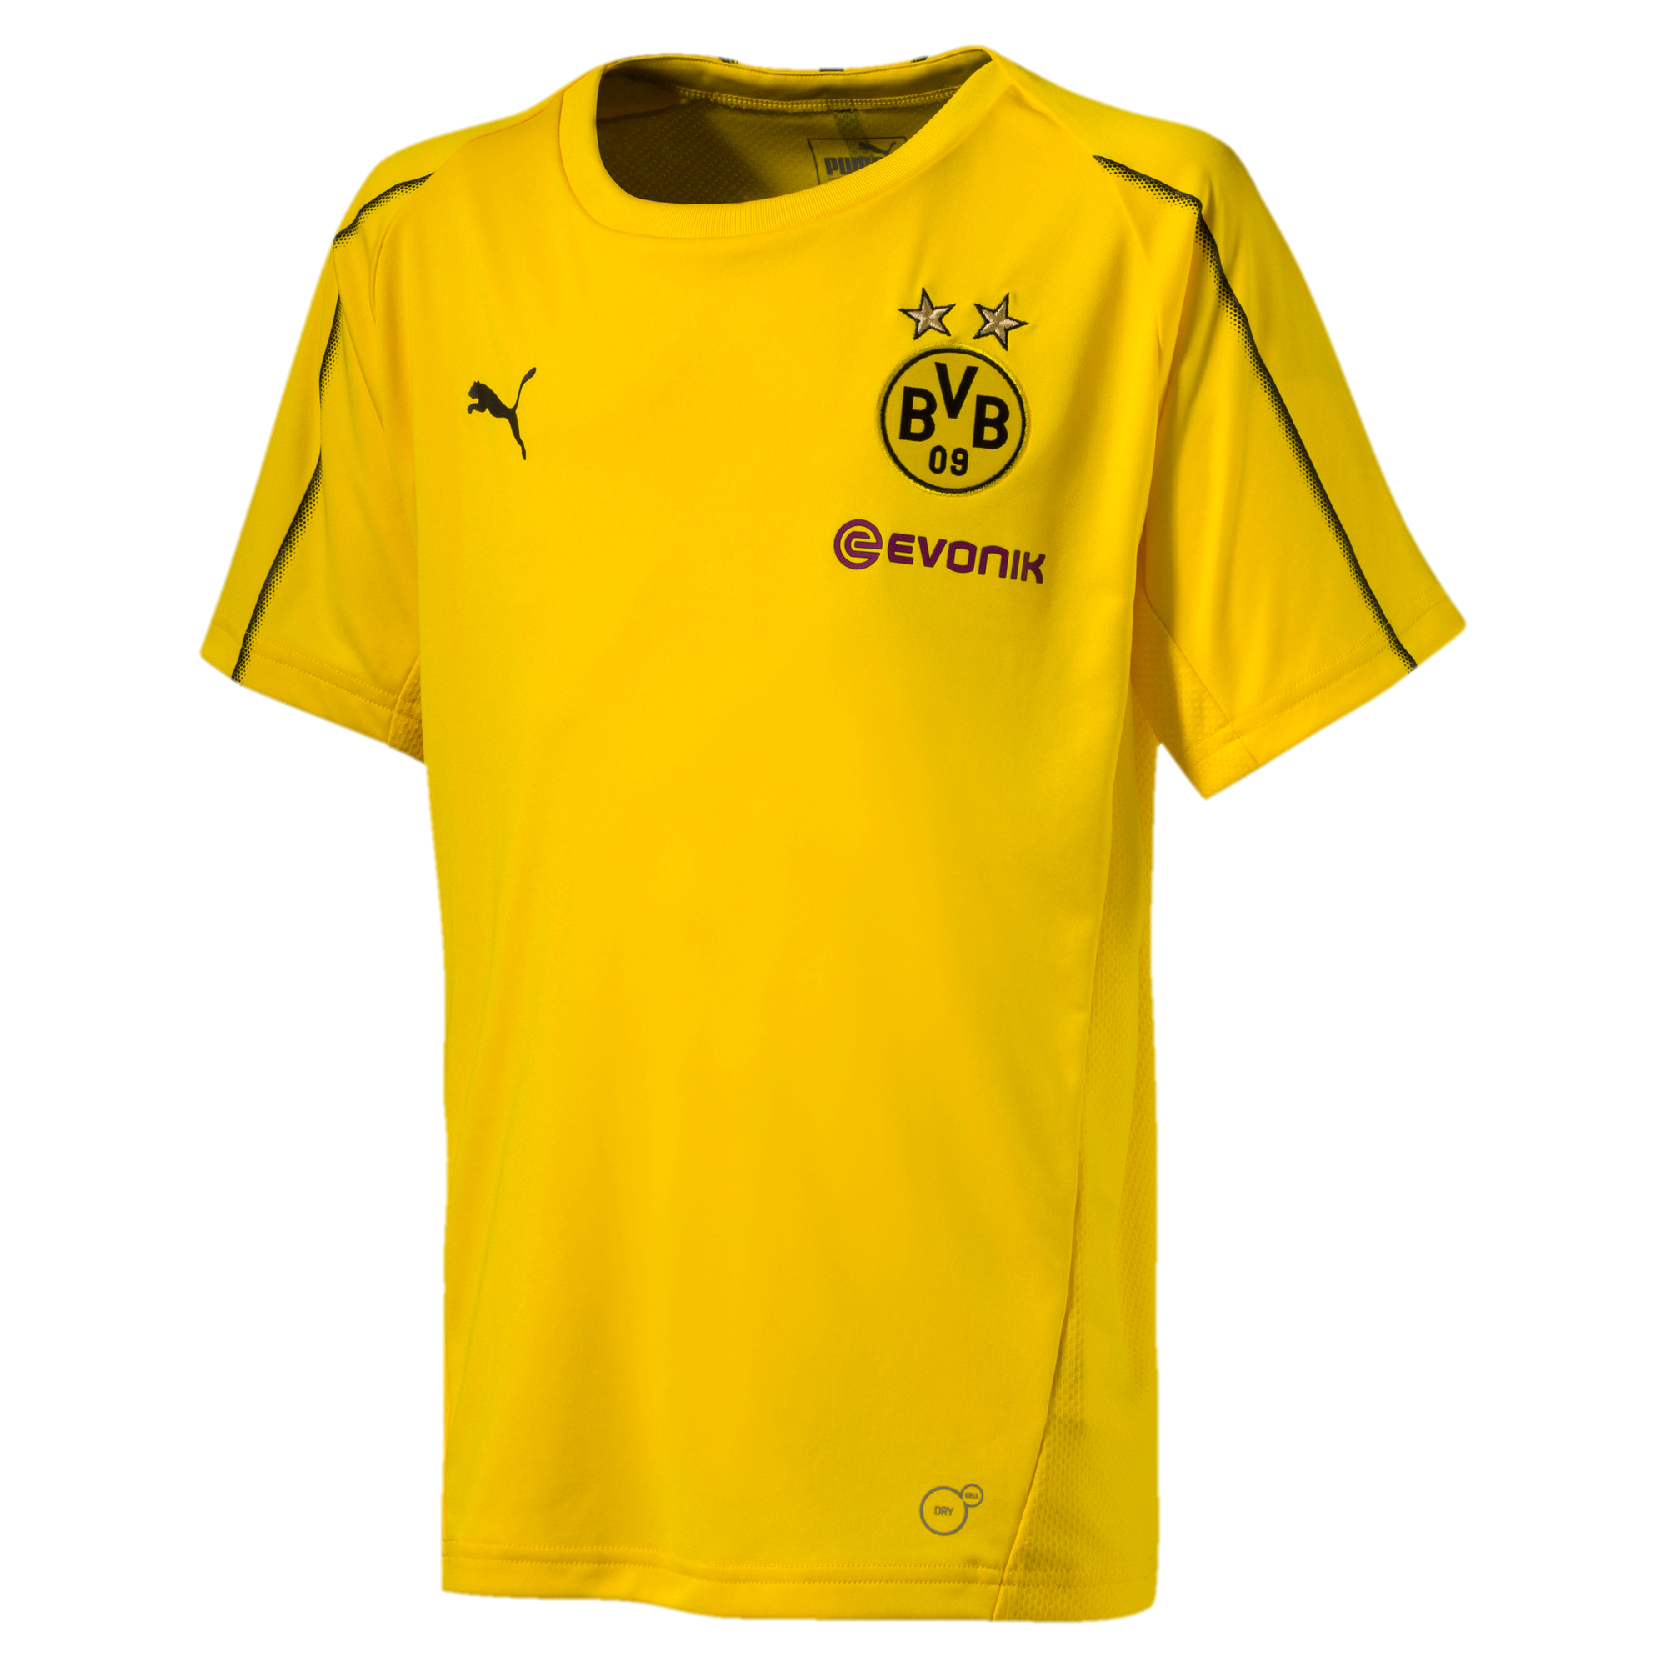 puma bvb borussia dortmund herren kinder polo shirt. Black Bedroom Furniture Sets. Home Design Ideas